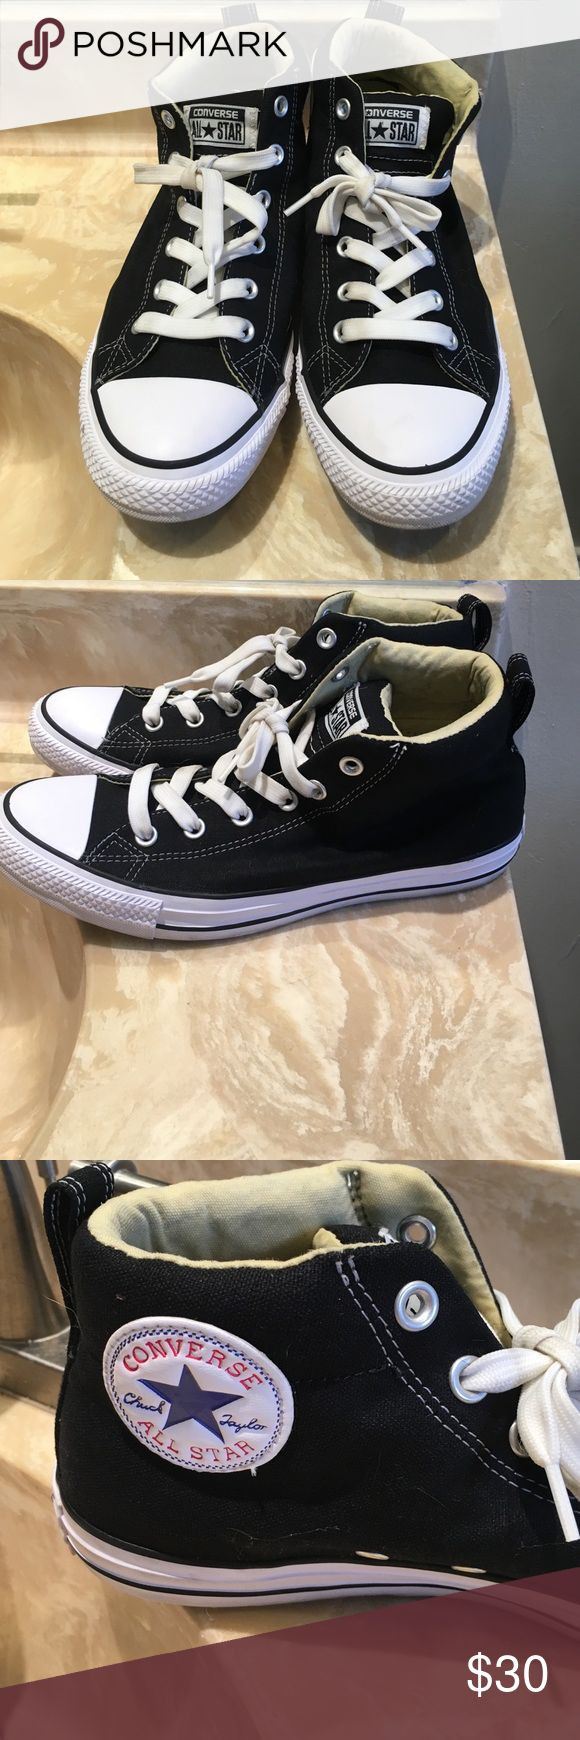 Men's Converse High Tops Worn 4 times, great condition, teenage boy growing to fast to wear shoes often Converse Shoes Sneakers